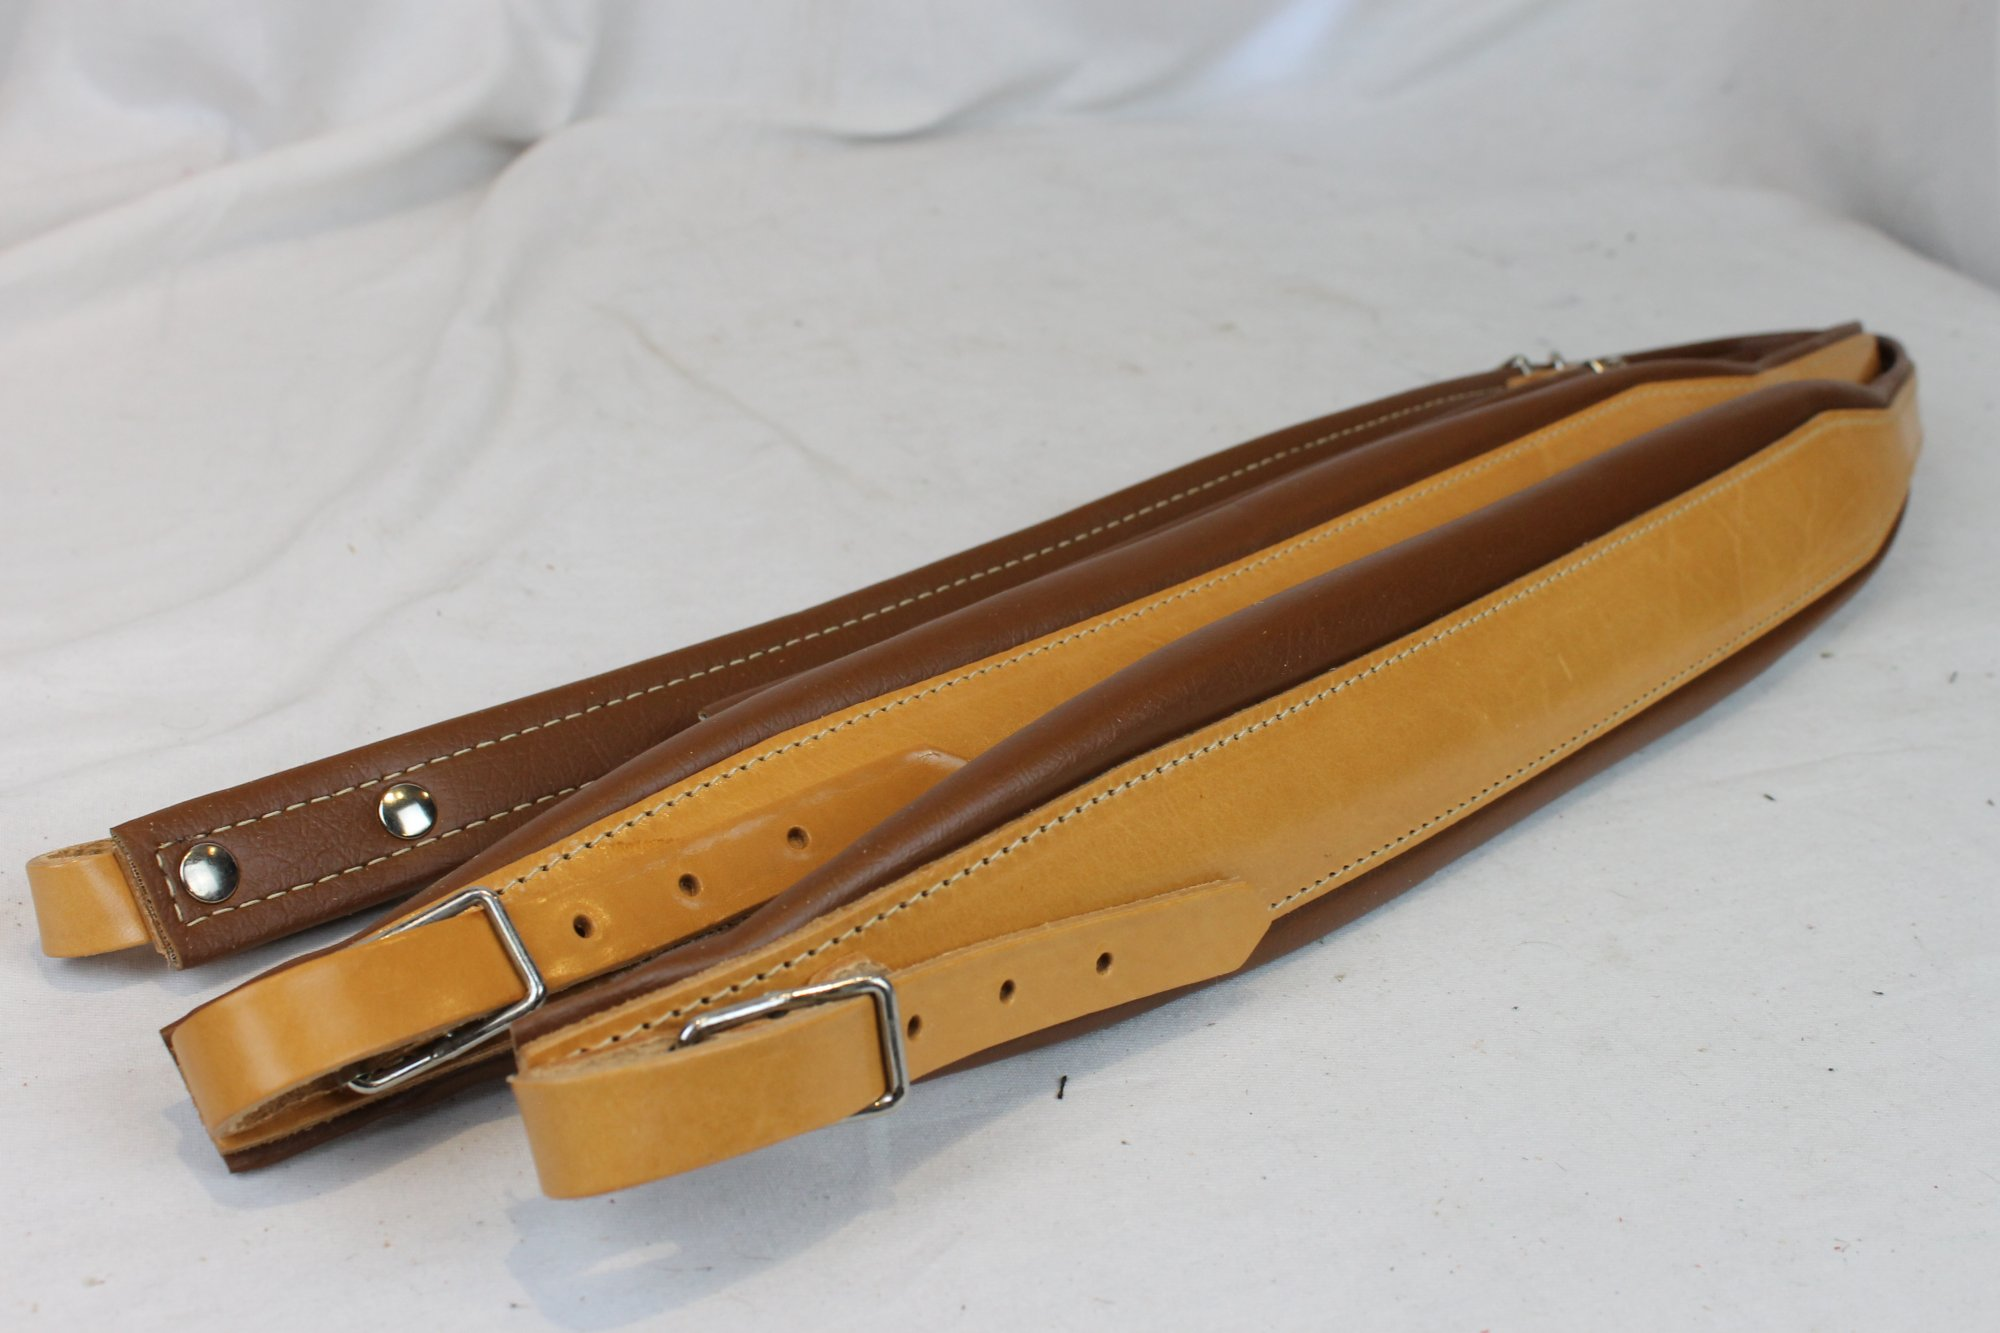 New Tan Leather Fuselli Accordion Shoulder Straps Width (7 cm / 2.8 inch) Length (91cm-111cm / 35.8-43.7 inch)